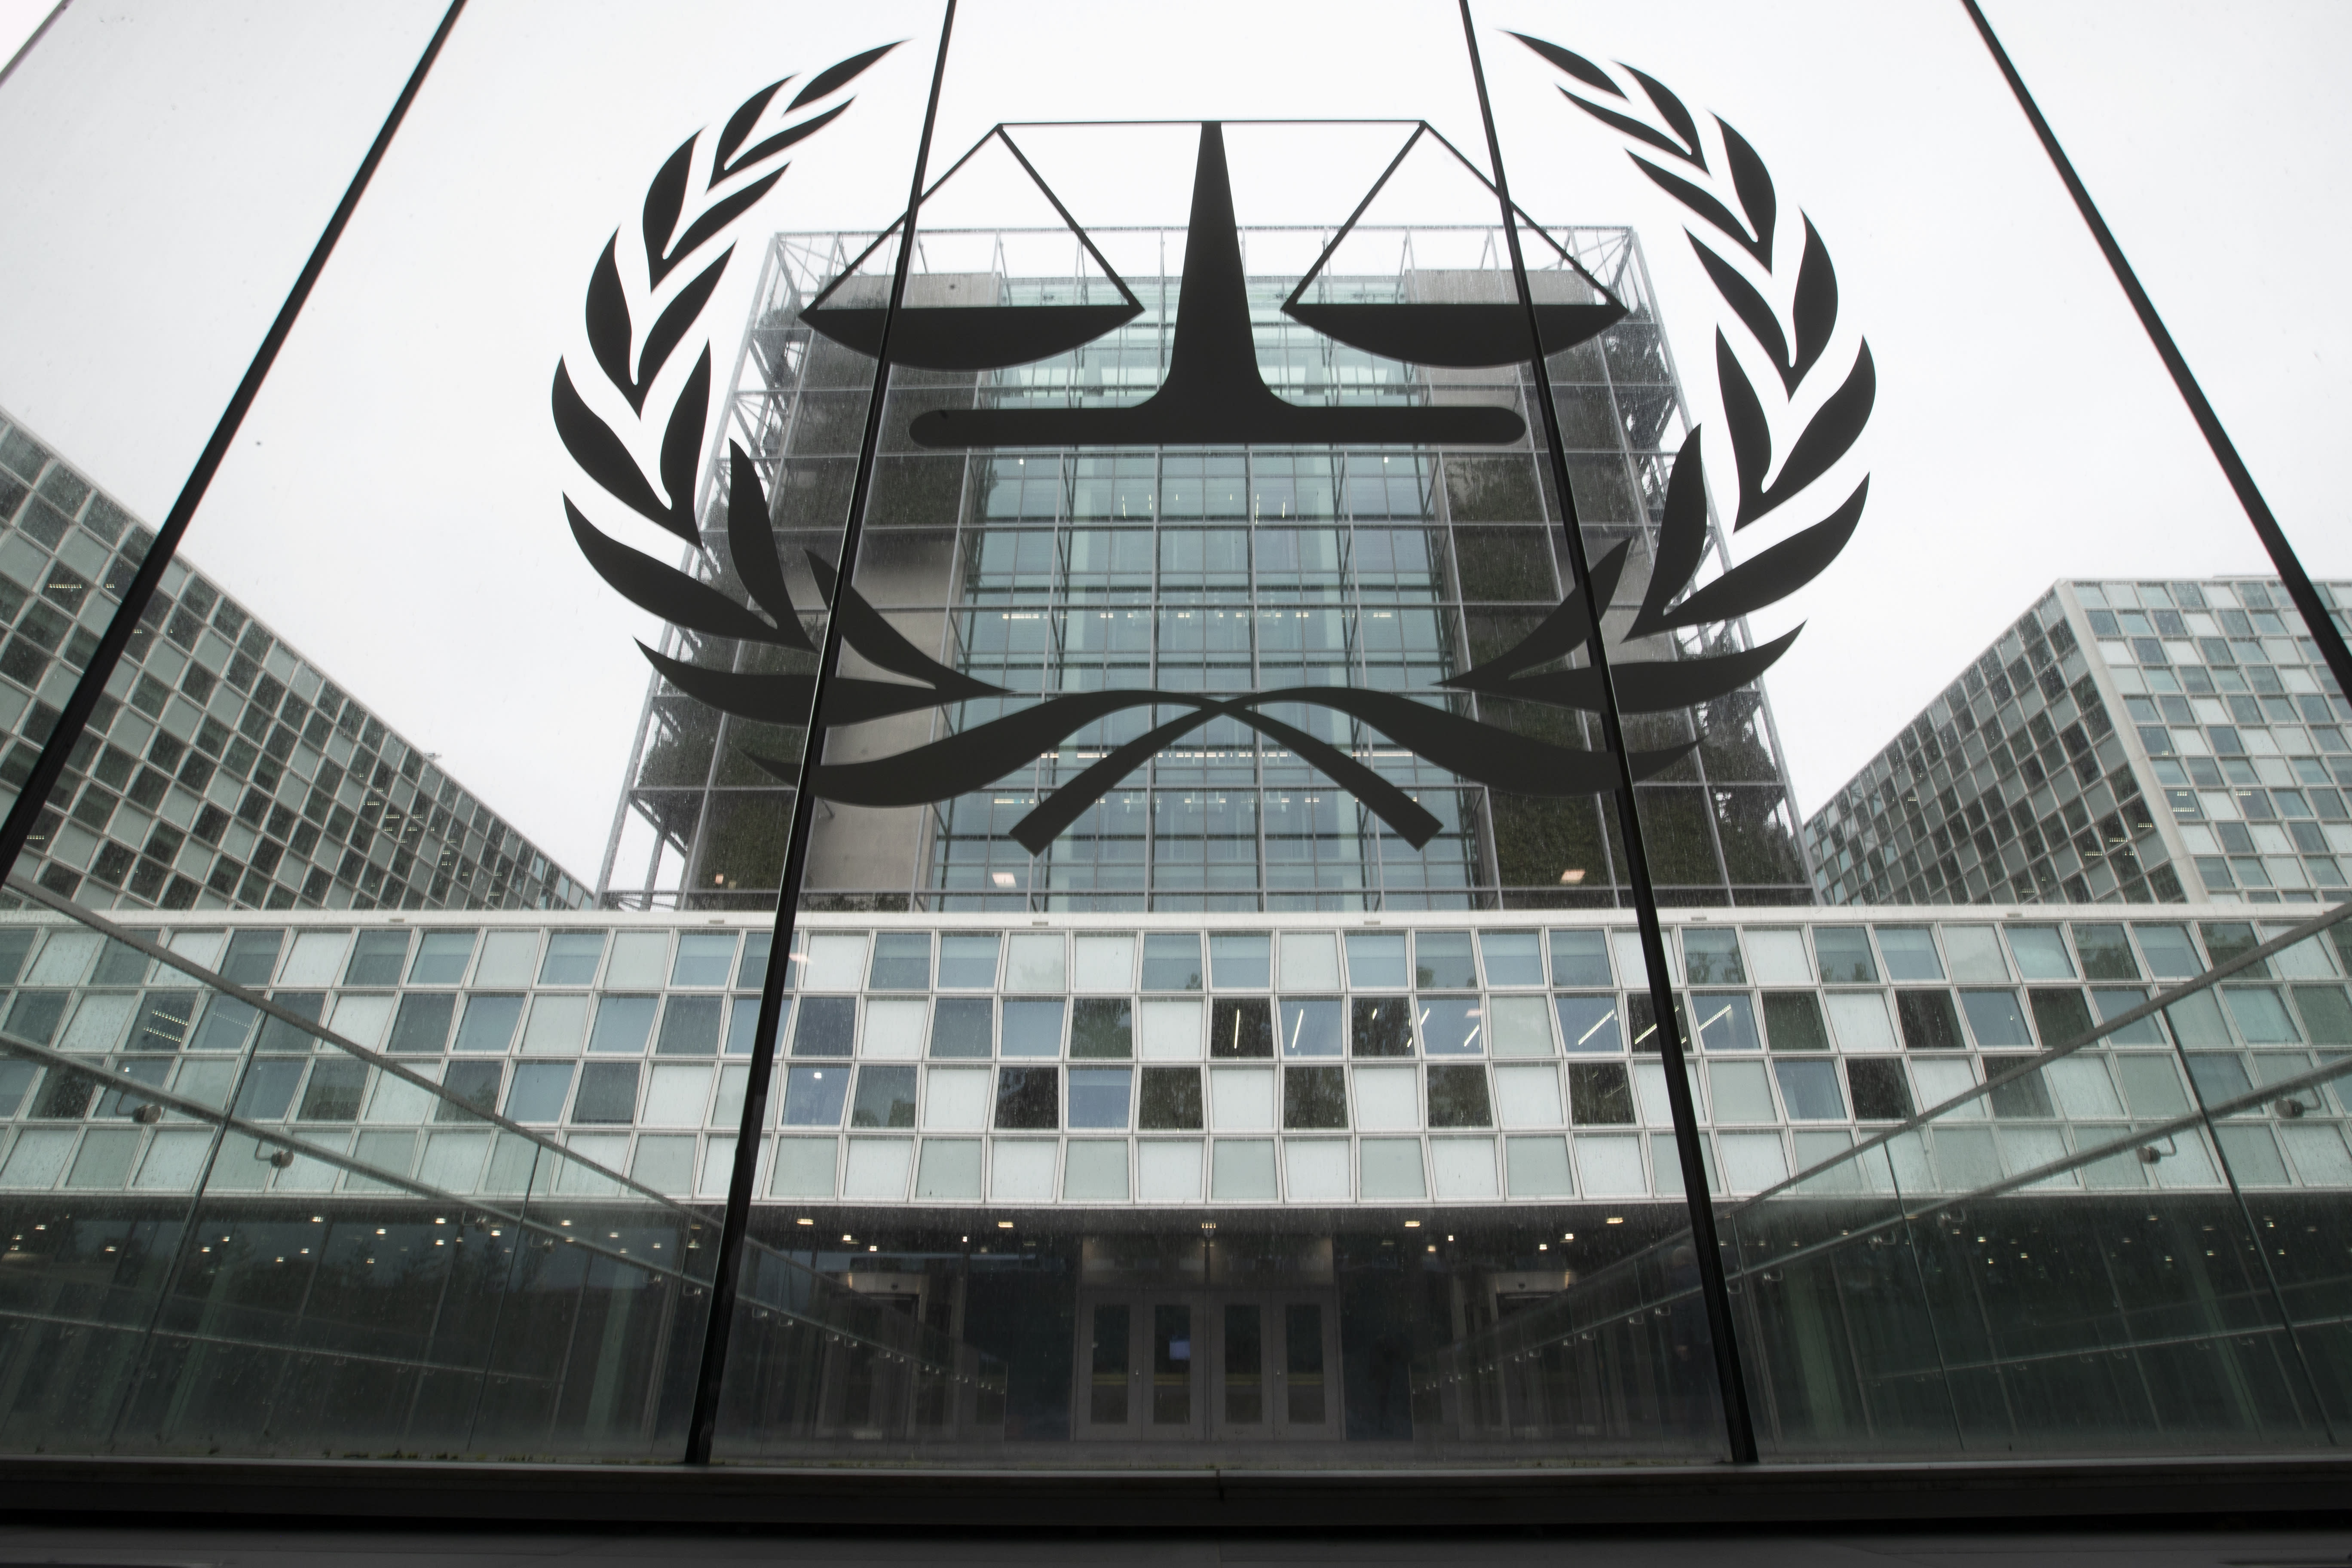 -FILE- In this Thursday, Nov. 7, 2019 file image the International Criminal Court, or ICC, is seen in The Hague, Netherlands. Sudanese militia leader Ali Kushayb has been arrested on war crimes charges related to the conflict in Darfur more than 13 years after a warrant was issued for him, authorities said Tuesday. Kushayb surrended to authorities in a remote corner of northern Central African Republic, near the country's border with Sudan, International Criminal Court spokesman Fadi El Abdallah said. (AP Photo/Peter Dejong, File)